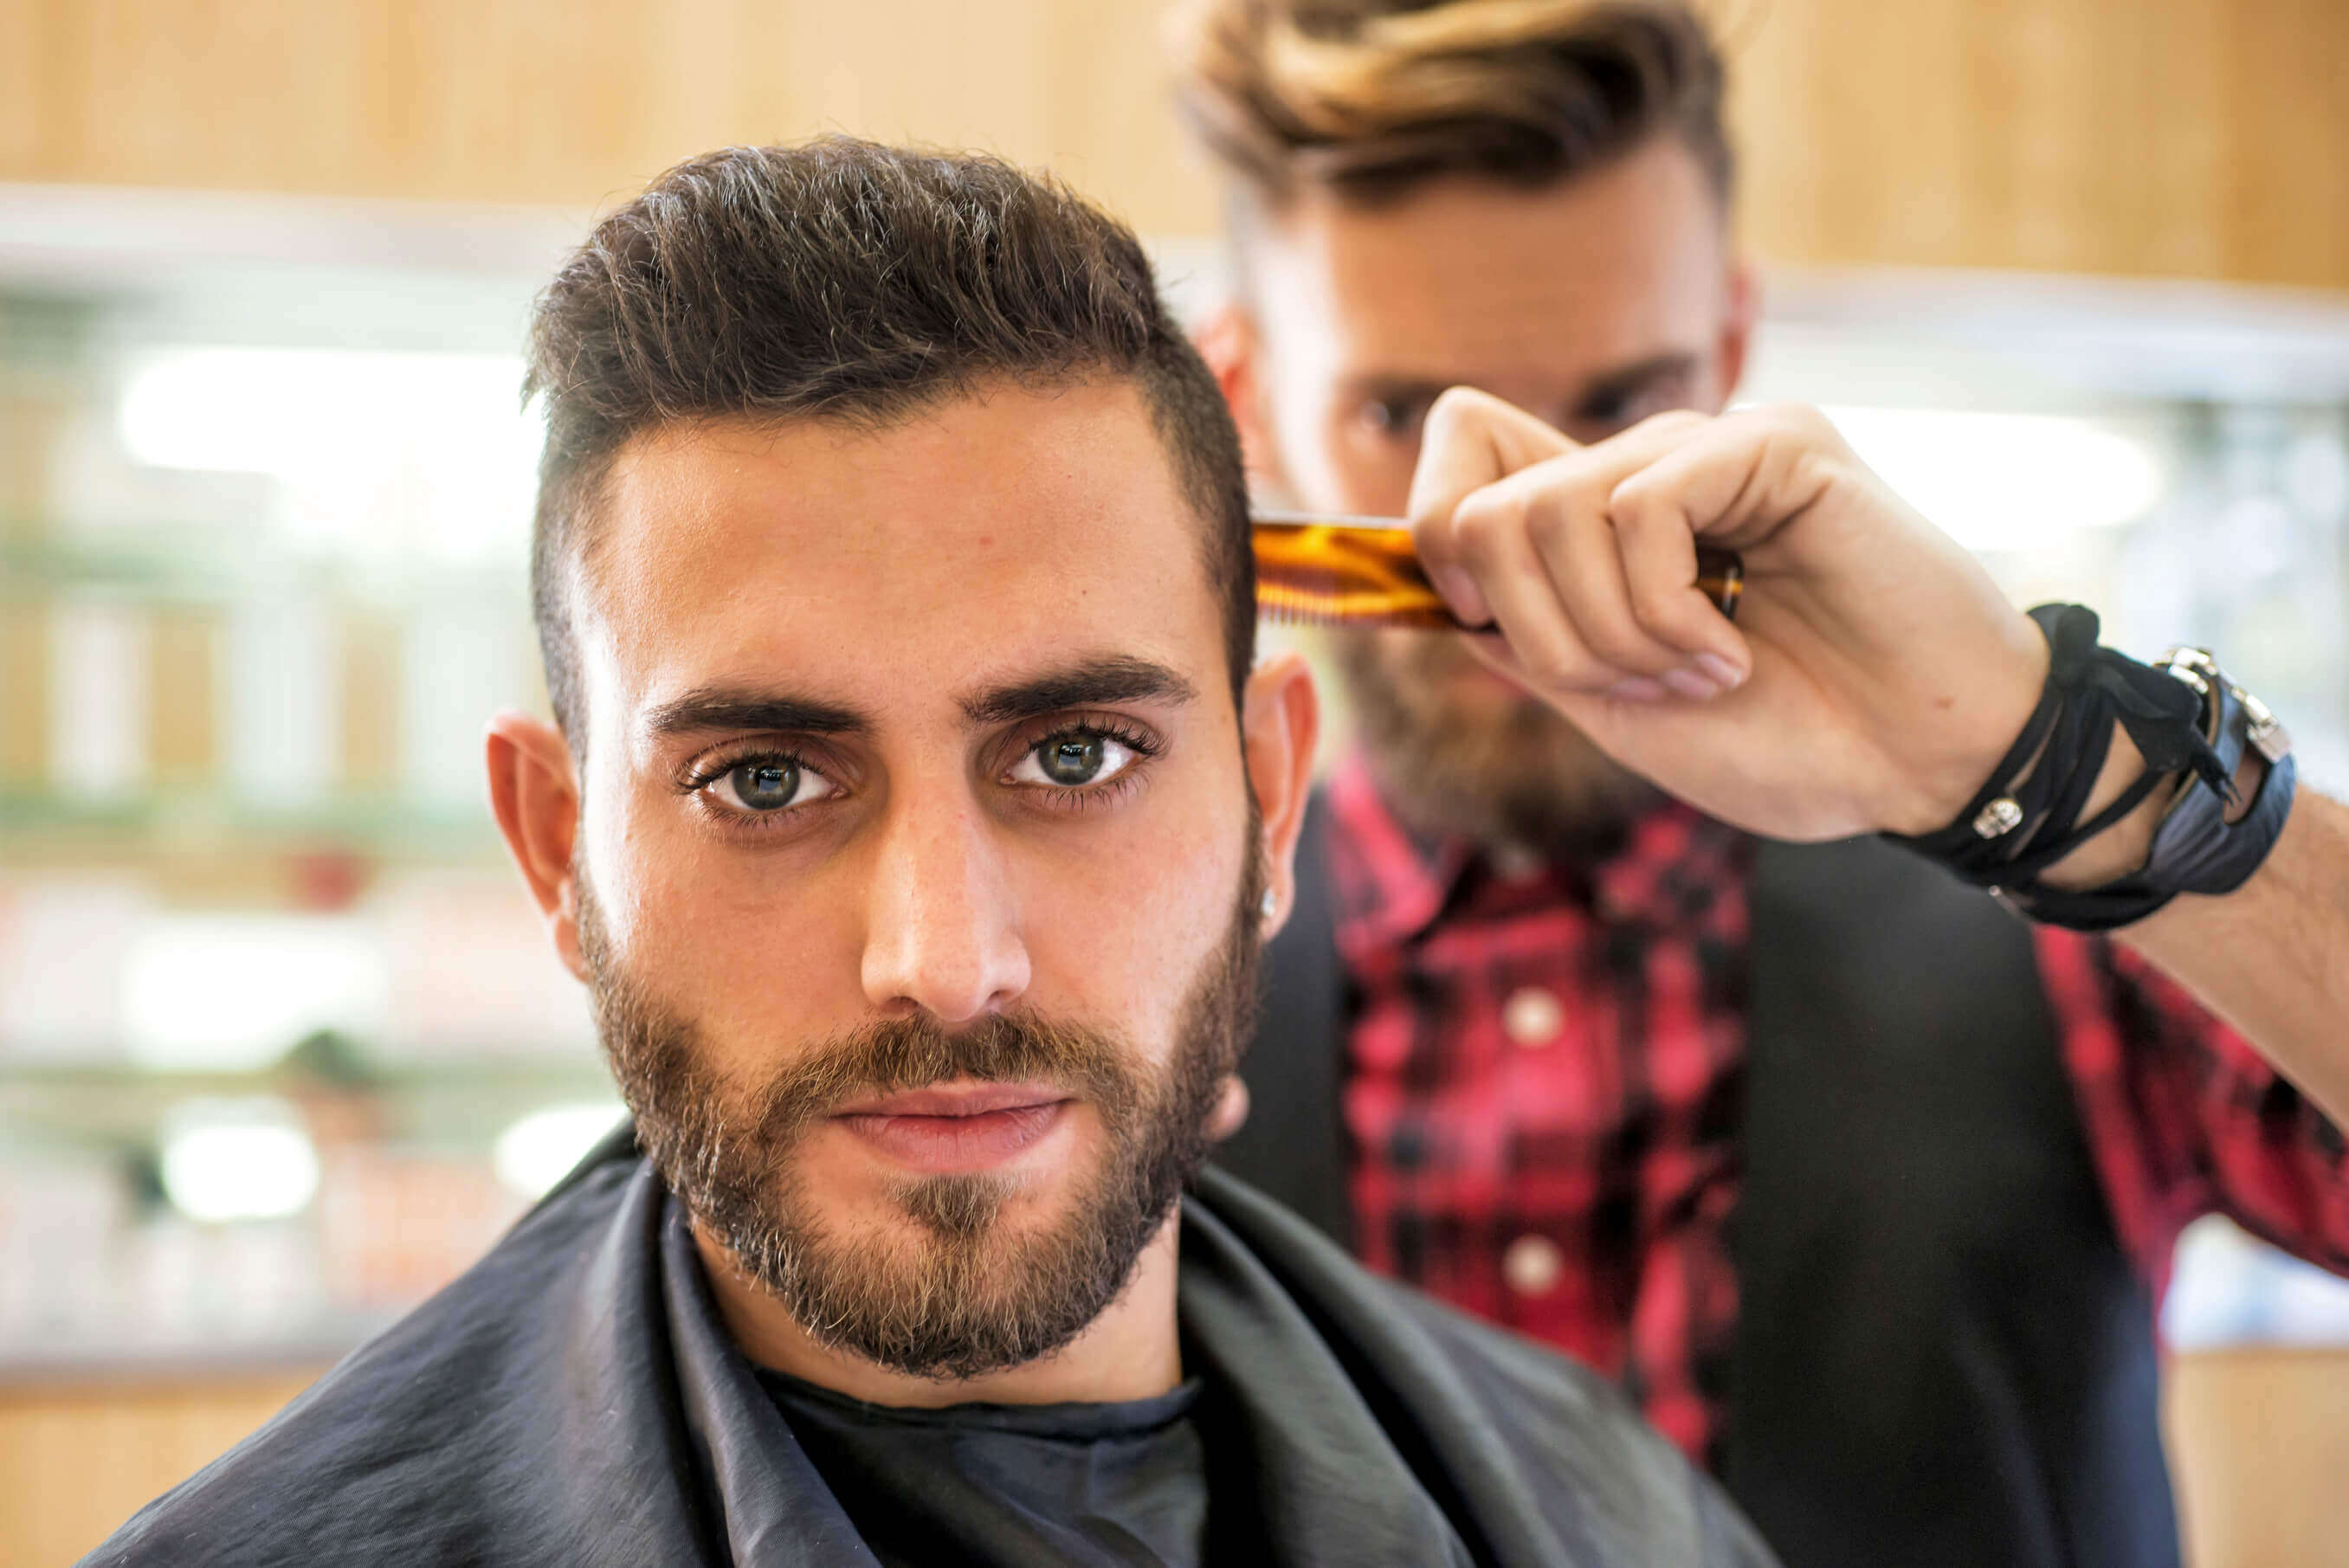 How To Maintain Your Short Haircut At Home